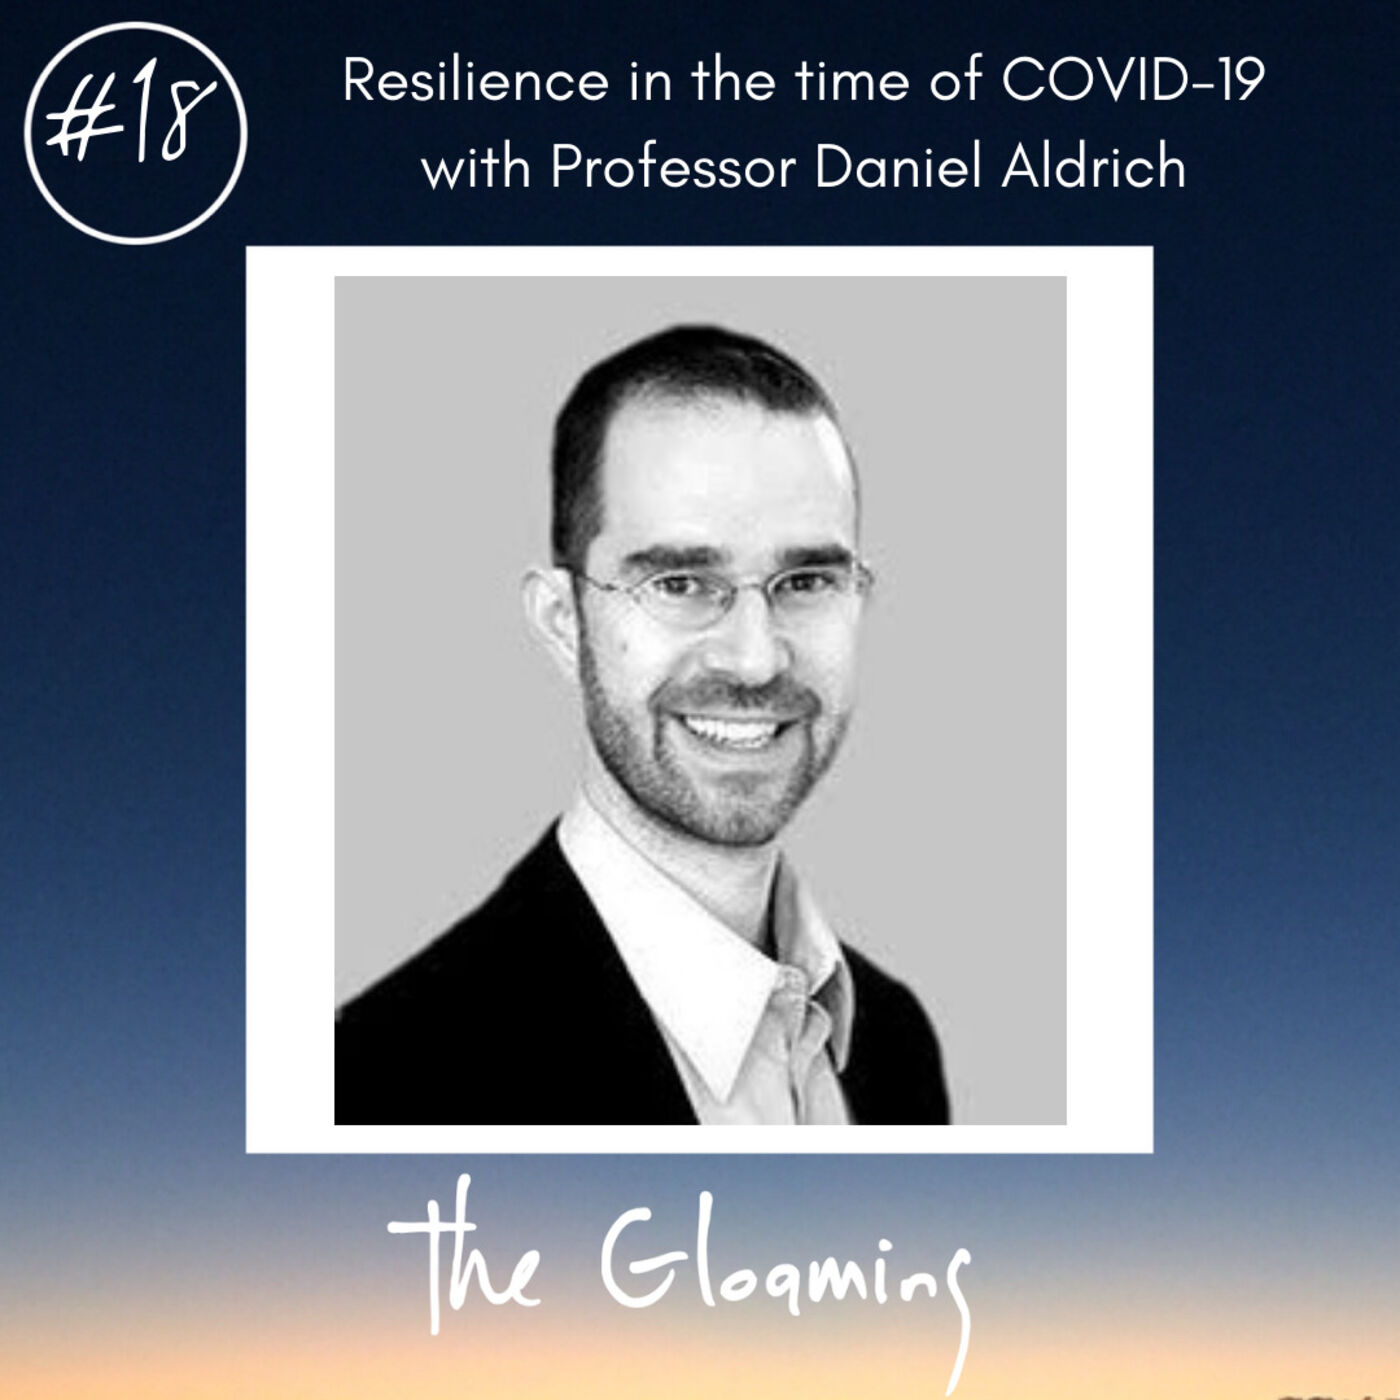 TG18: Resilience in the time of COVID-19 (with Professor Daniel Aldrich)